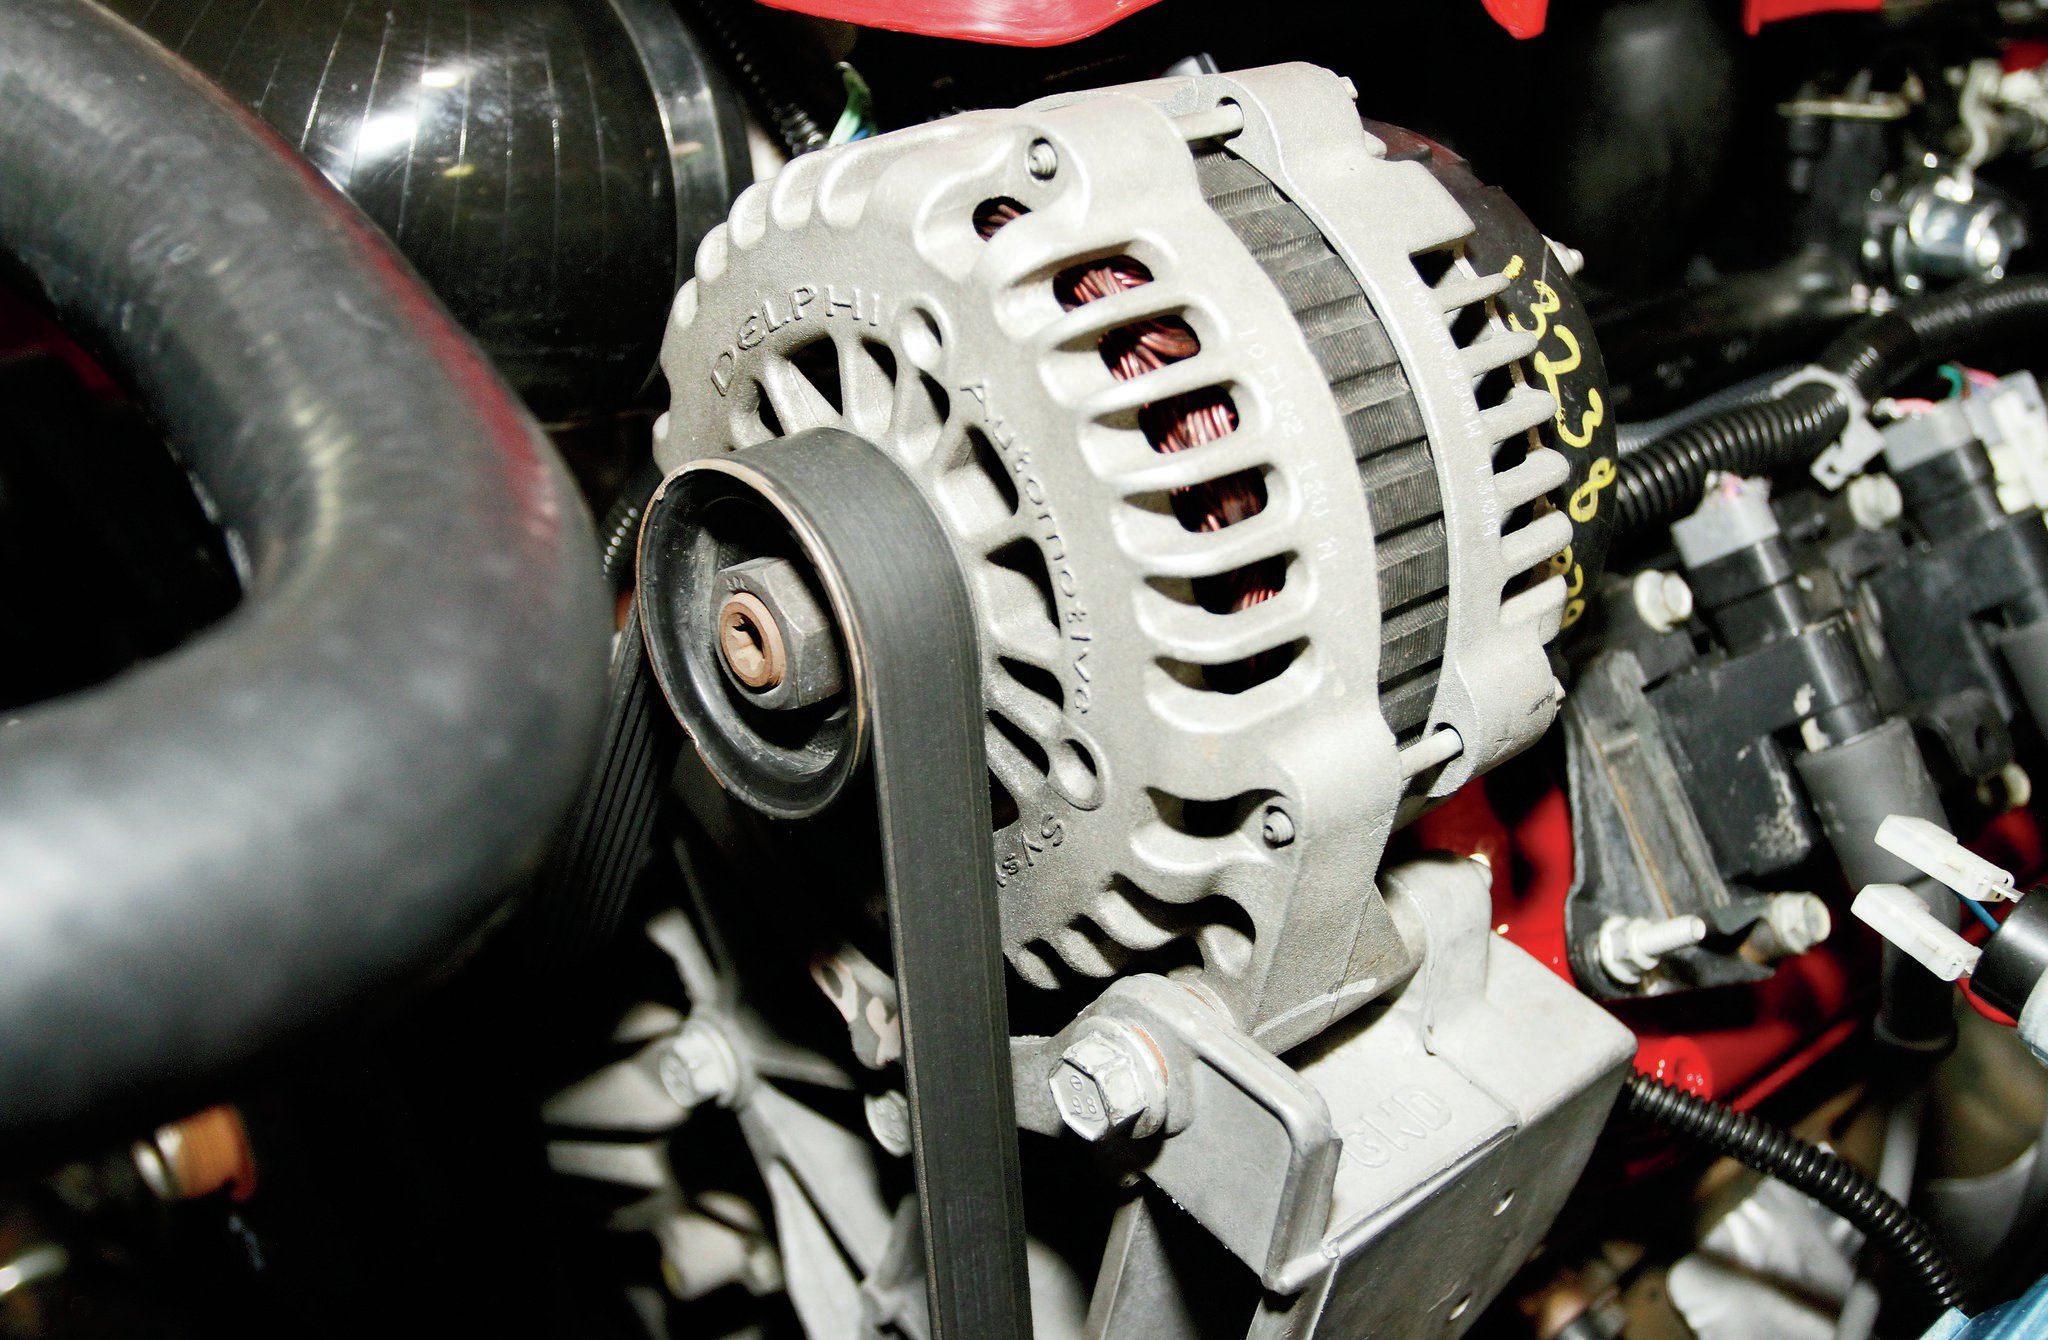 The factory GM alternator on the V-8 was retained and needed to be wired into the Jeep electrical system. The exciter wire for the alternator was built into the new harness. The main charge wire from the alternator was routed to the battery positive post, with a Maxi-Fuse used inline.